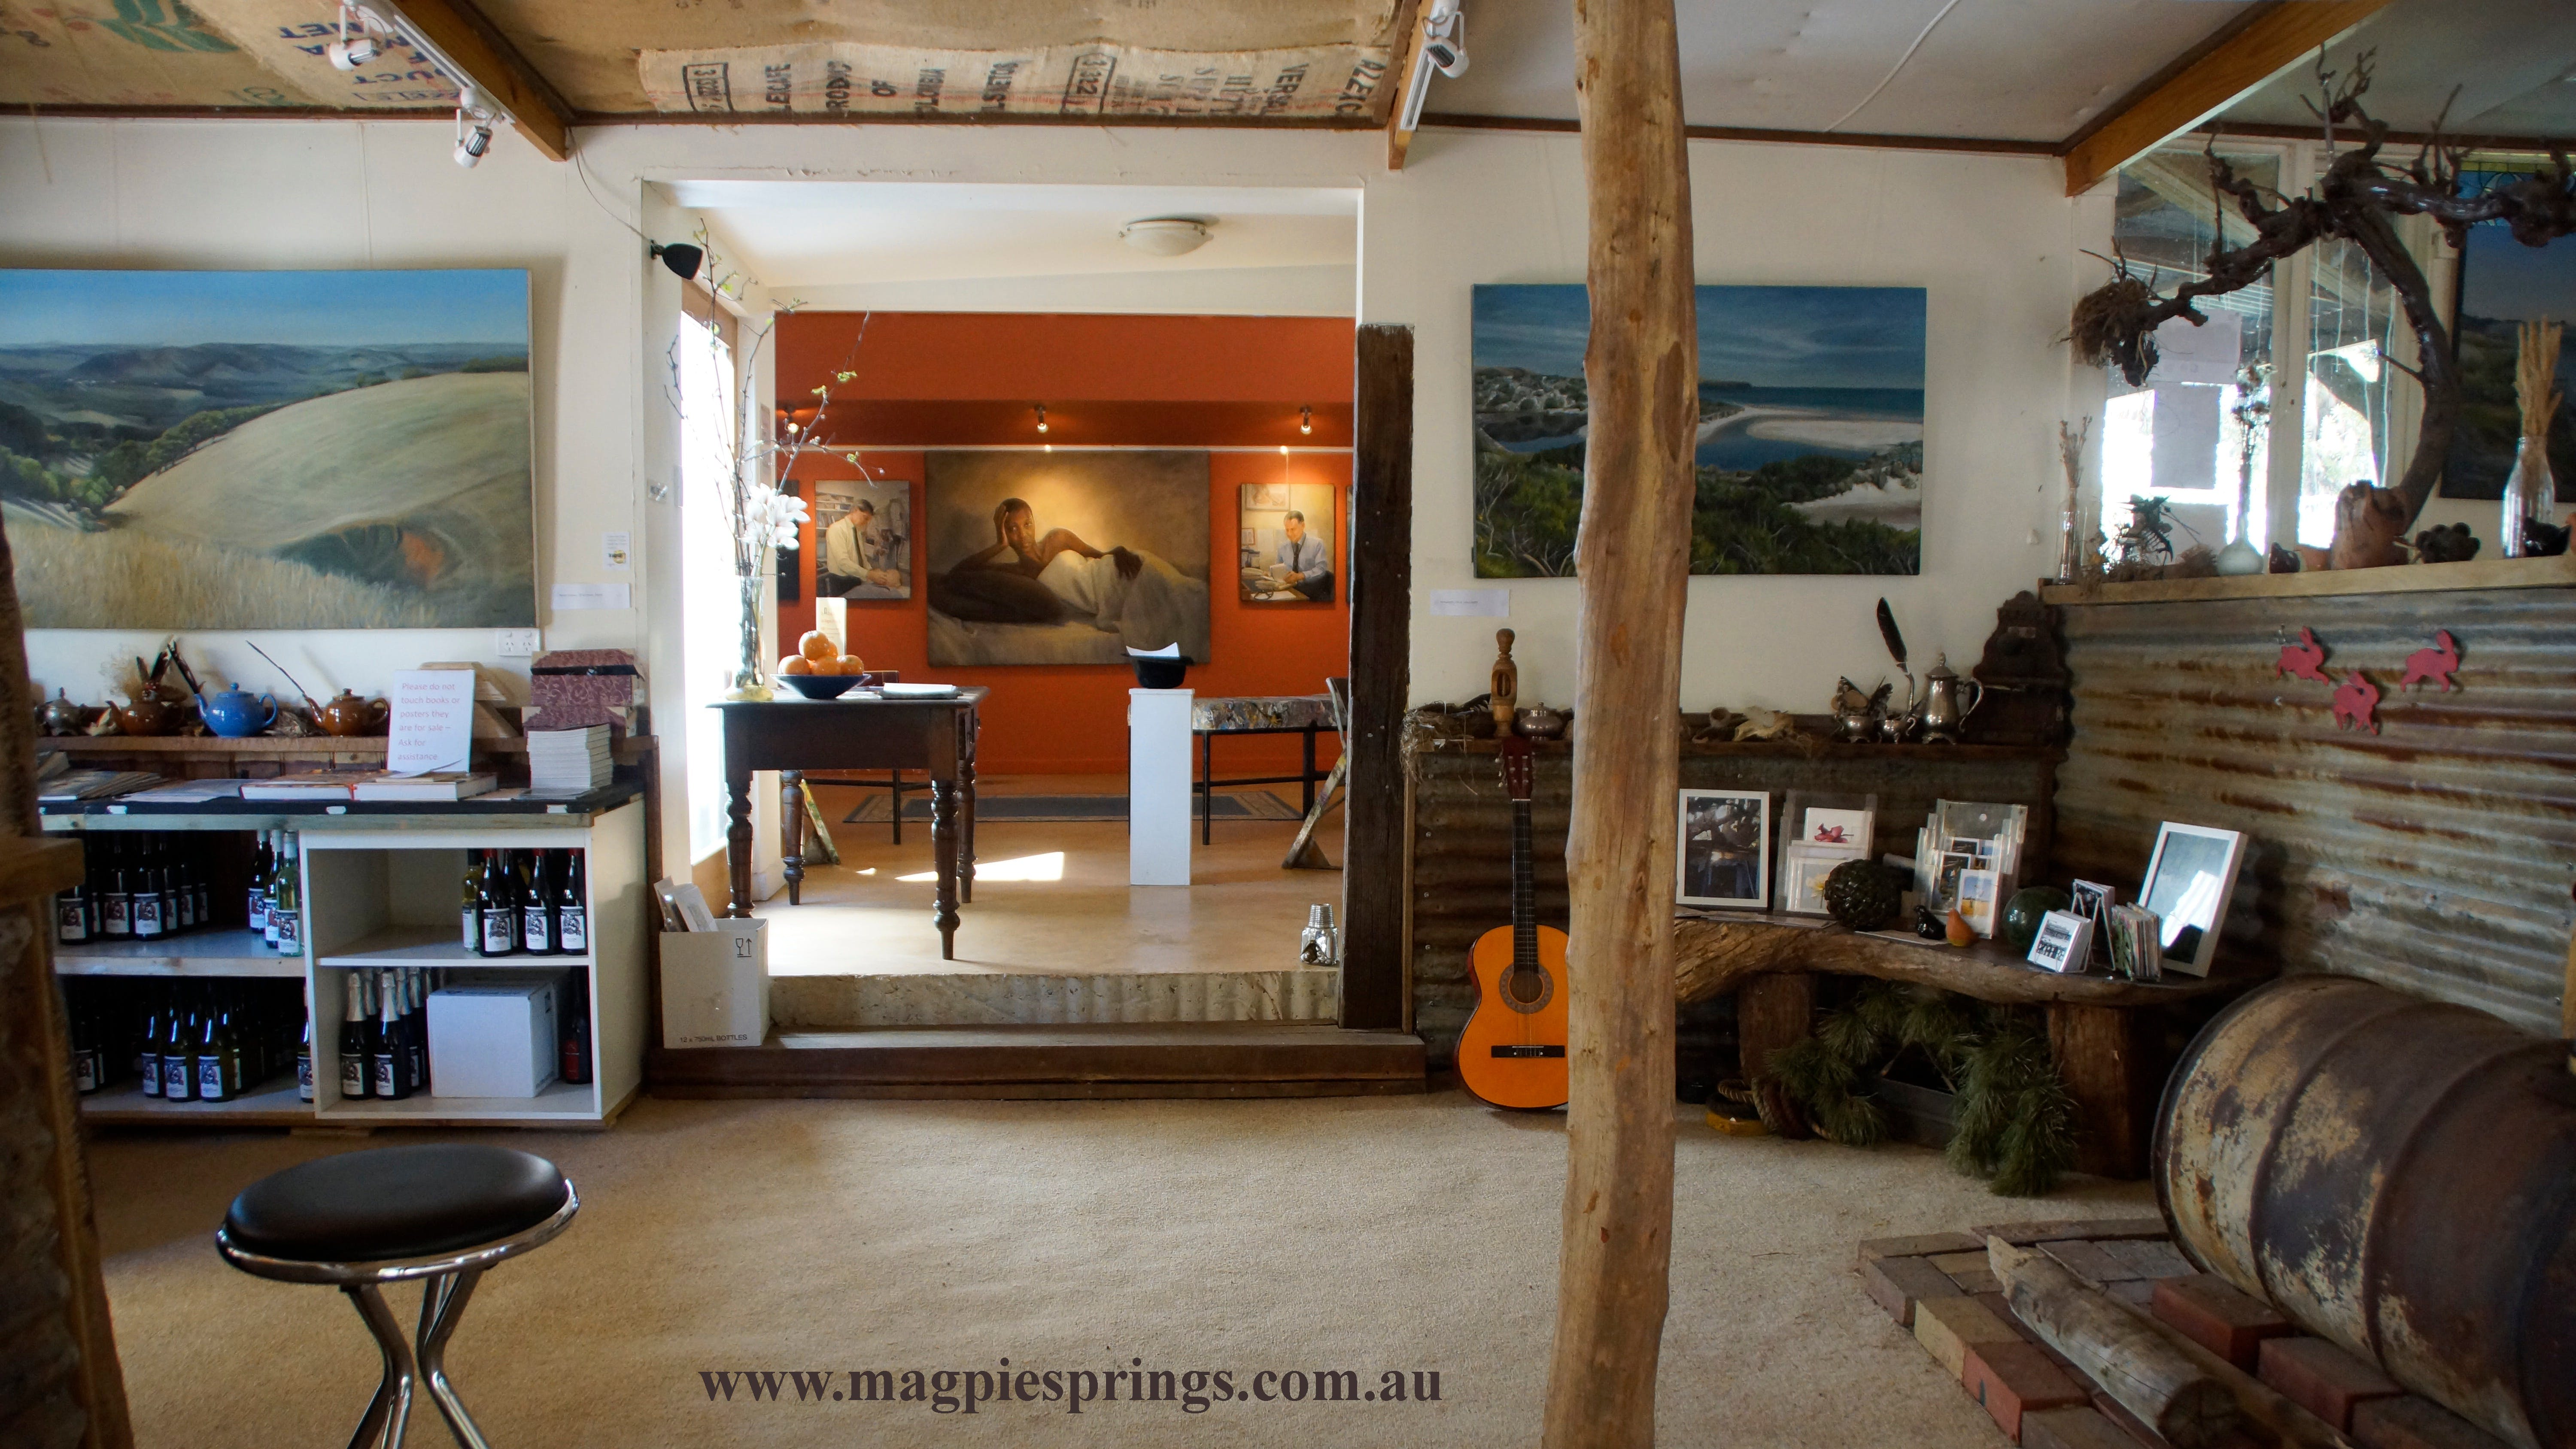 Magpie Springs gallery - Accommodation Find